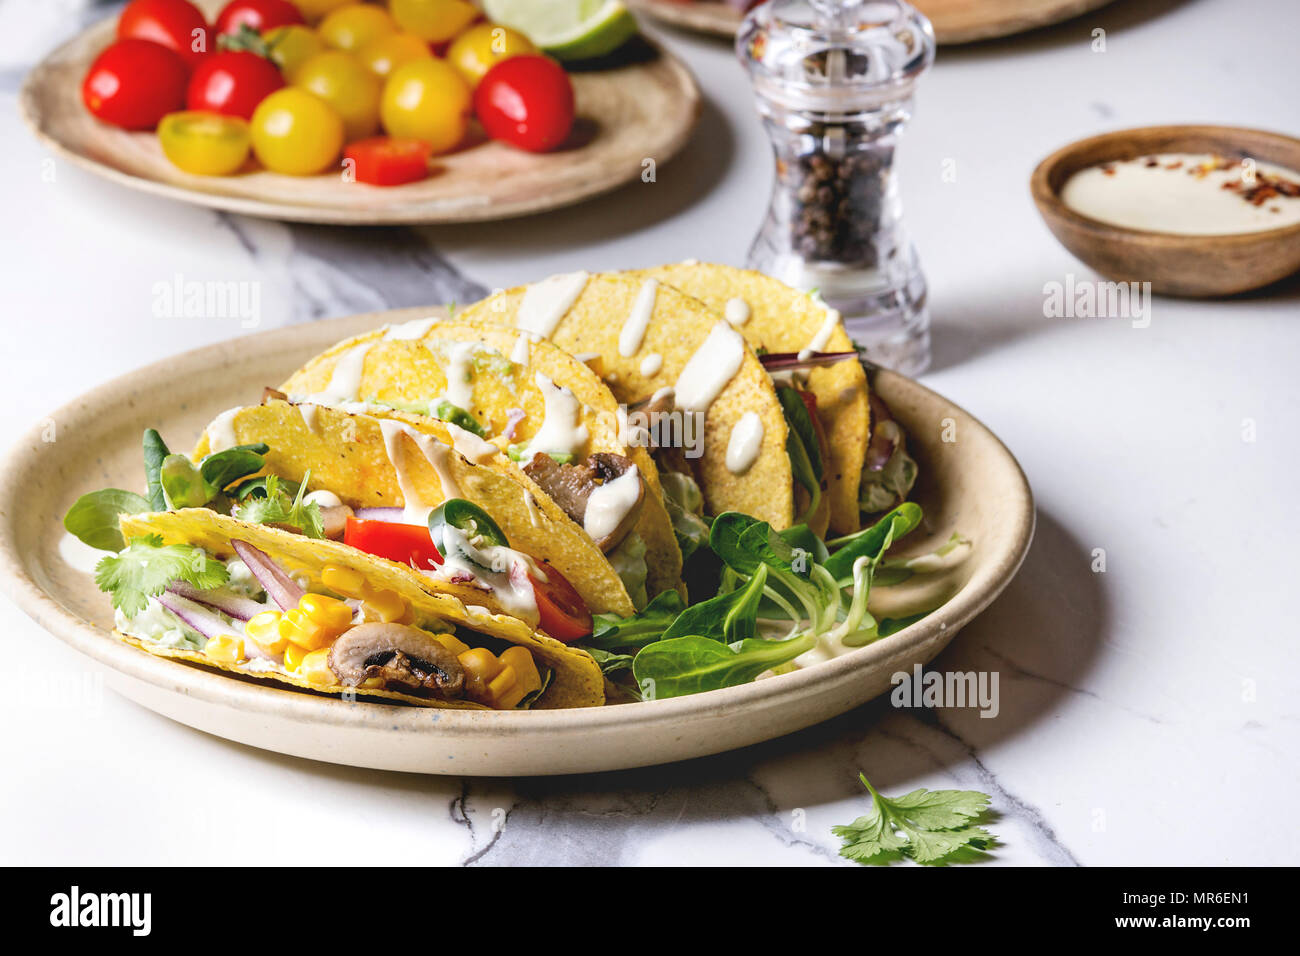 Variety of vegetarian corn tacos with vegetables green salad chili pepper served on ceramic plate with tomato and cream sauces with ingredients abov & Variety of vegetarian corn tacos with vegetables green salad chili ...